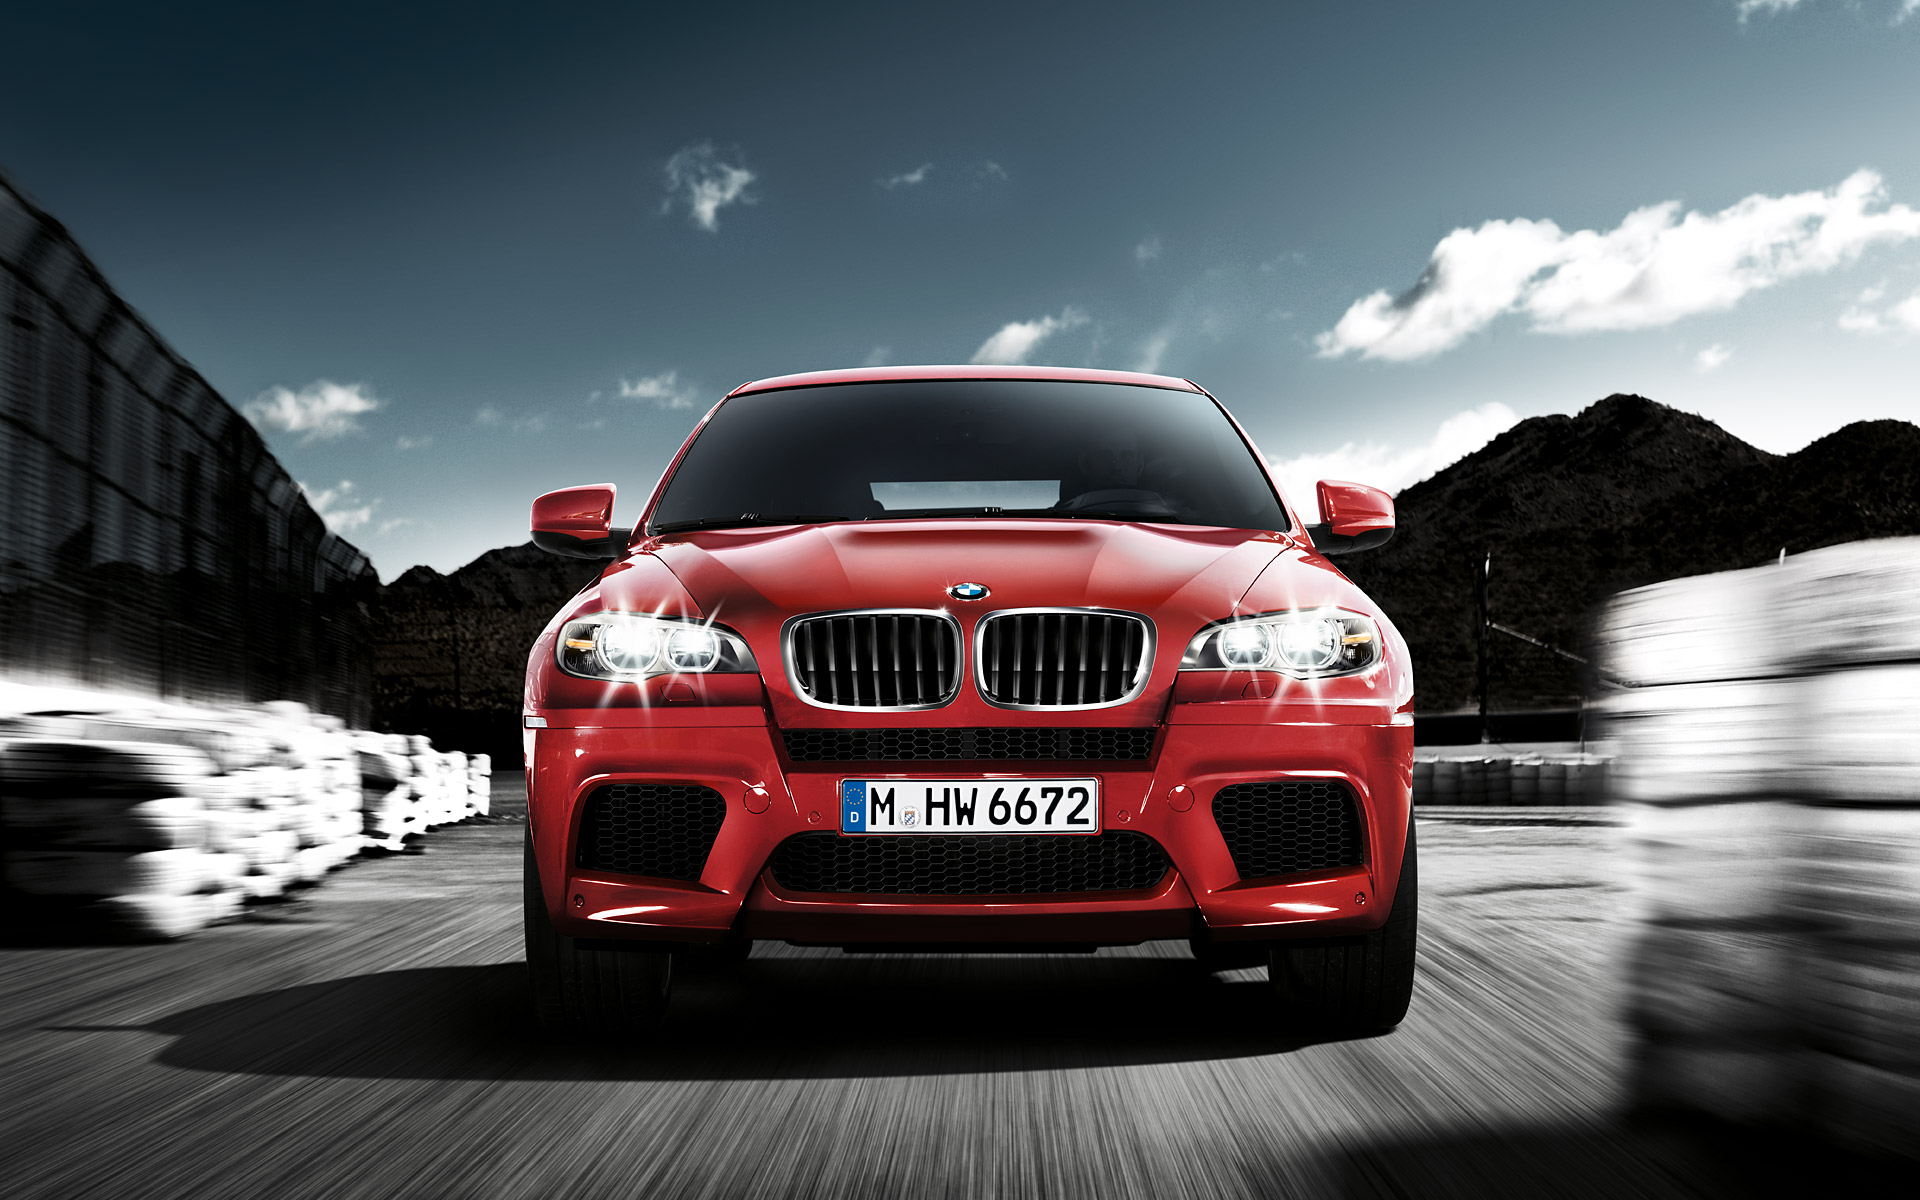 2013 bmw x6 m lci pricing 93 795 arrives in may. Black Bedroom Furniture Sets. Home Design Ideas